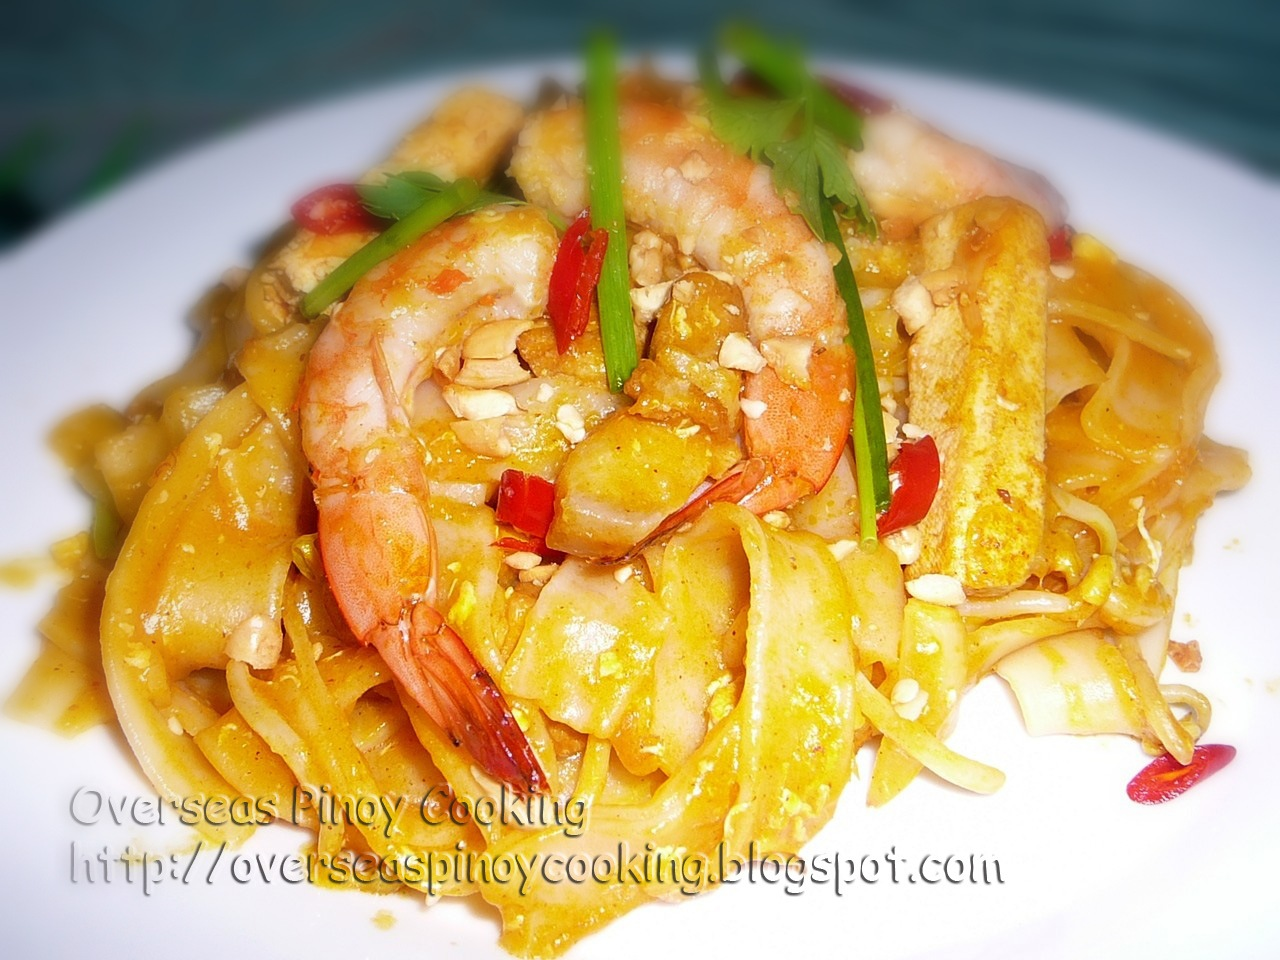 Pinoy Home Cooking and Recipes: July 2009